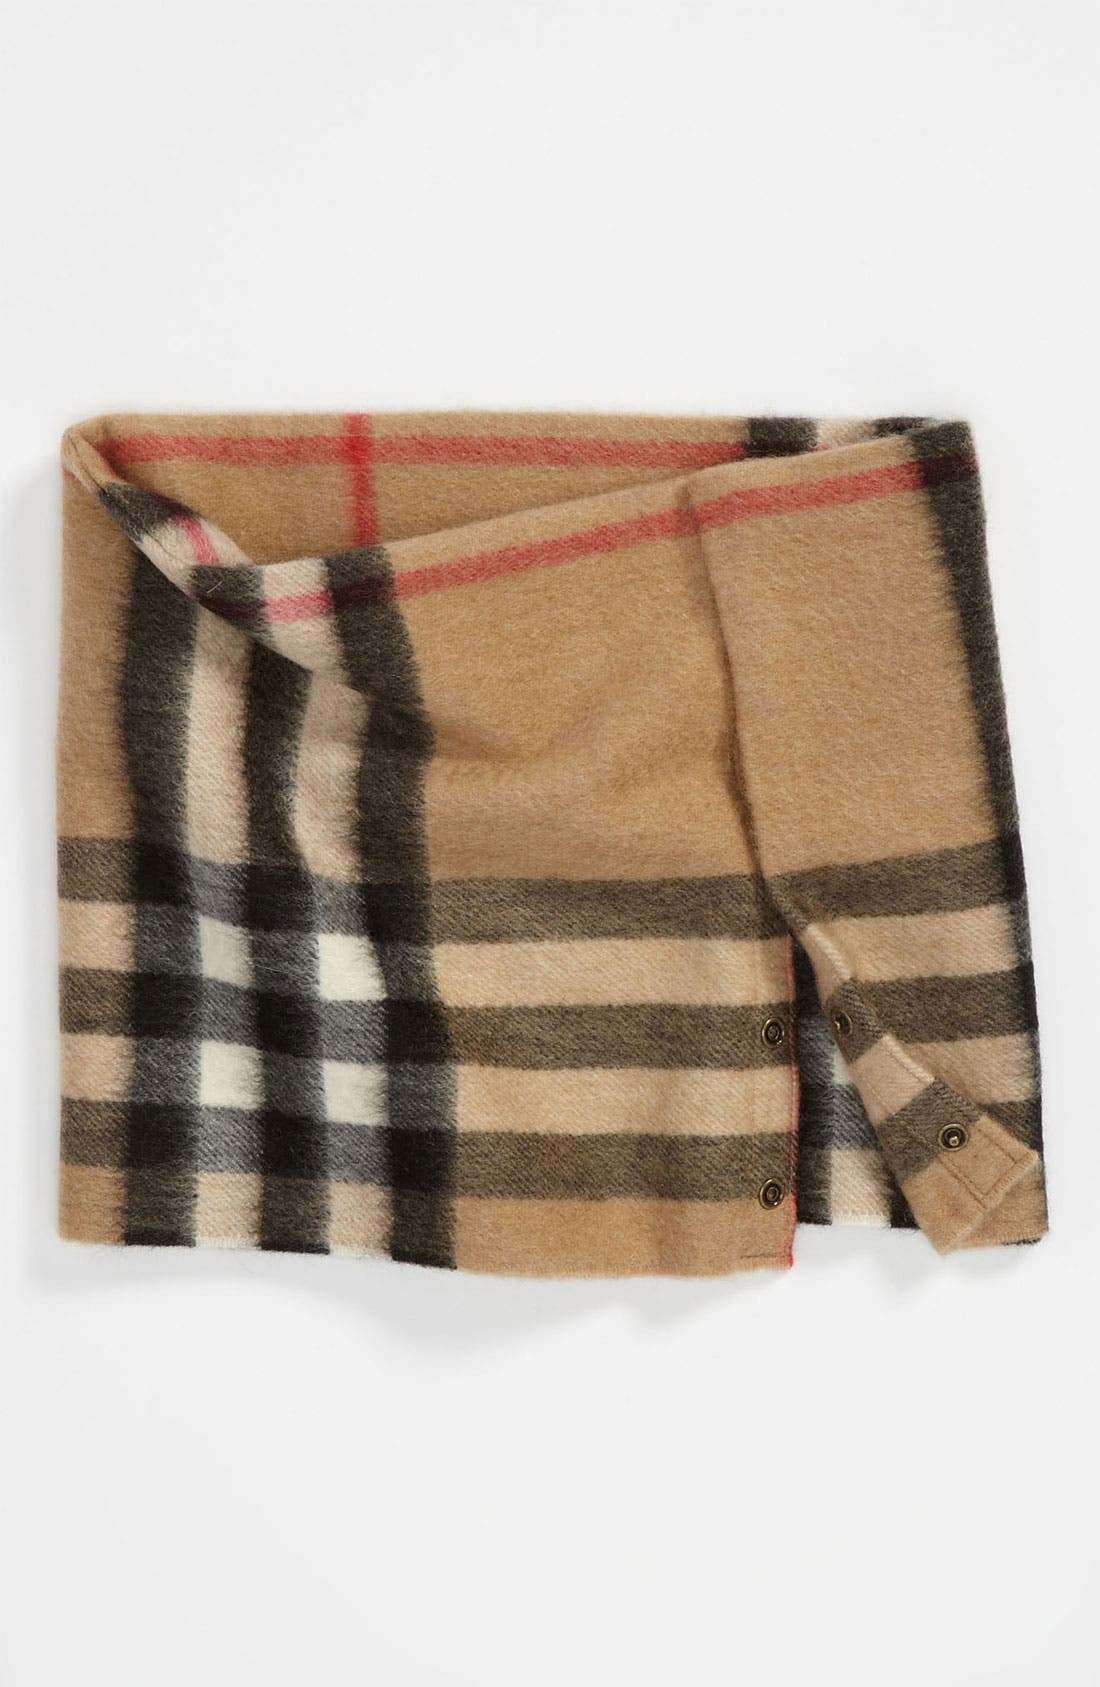 Alternate Image 1 Selected - Burberry 'House Check' Cashmere Snood (Girls)